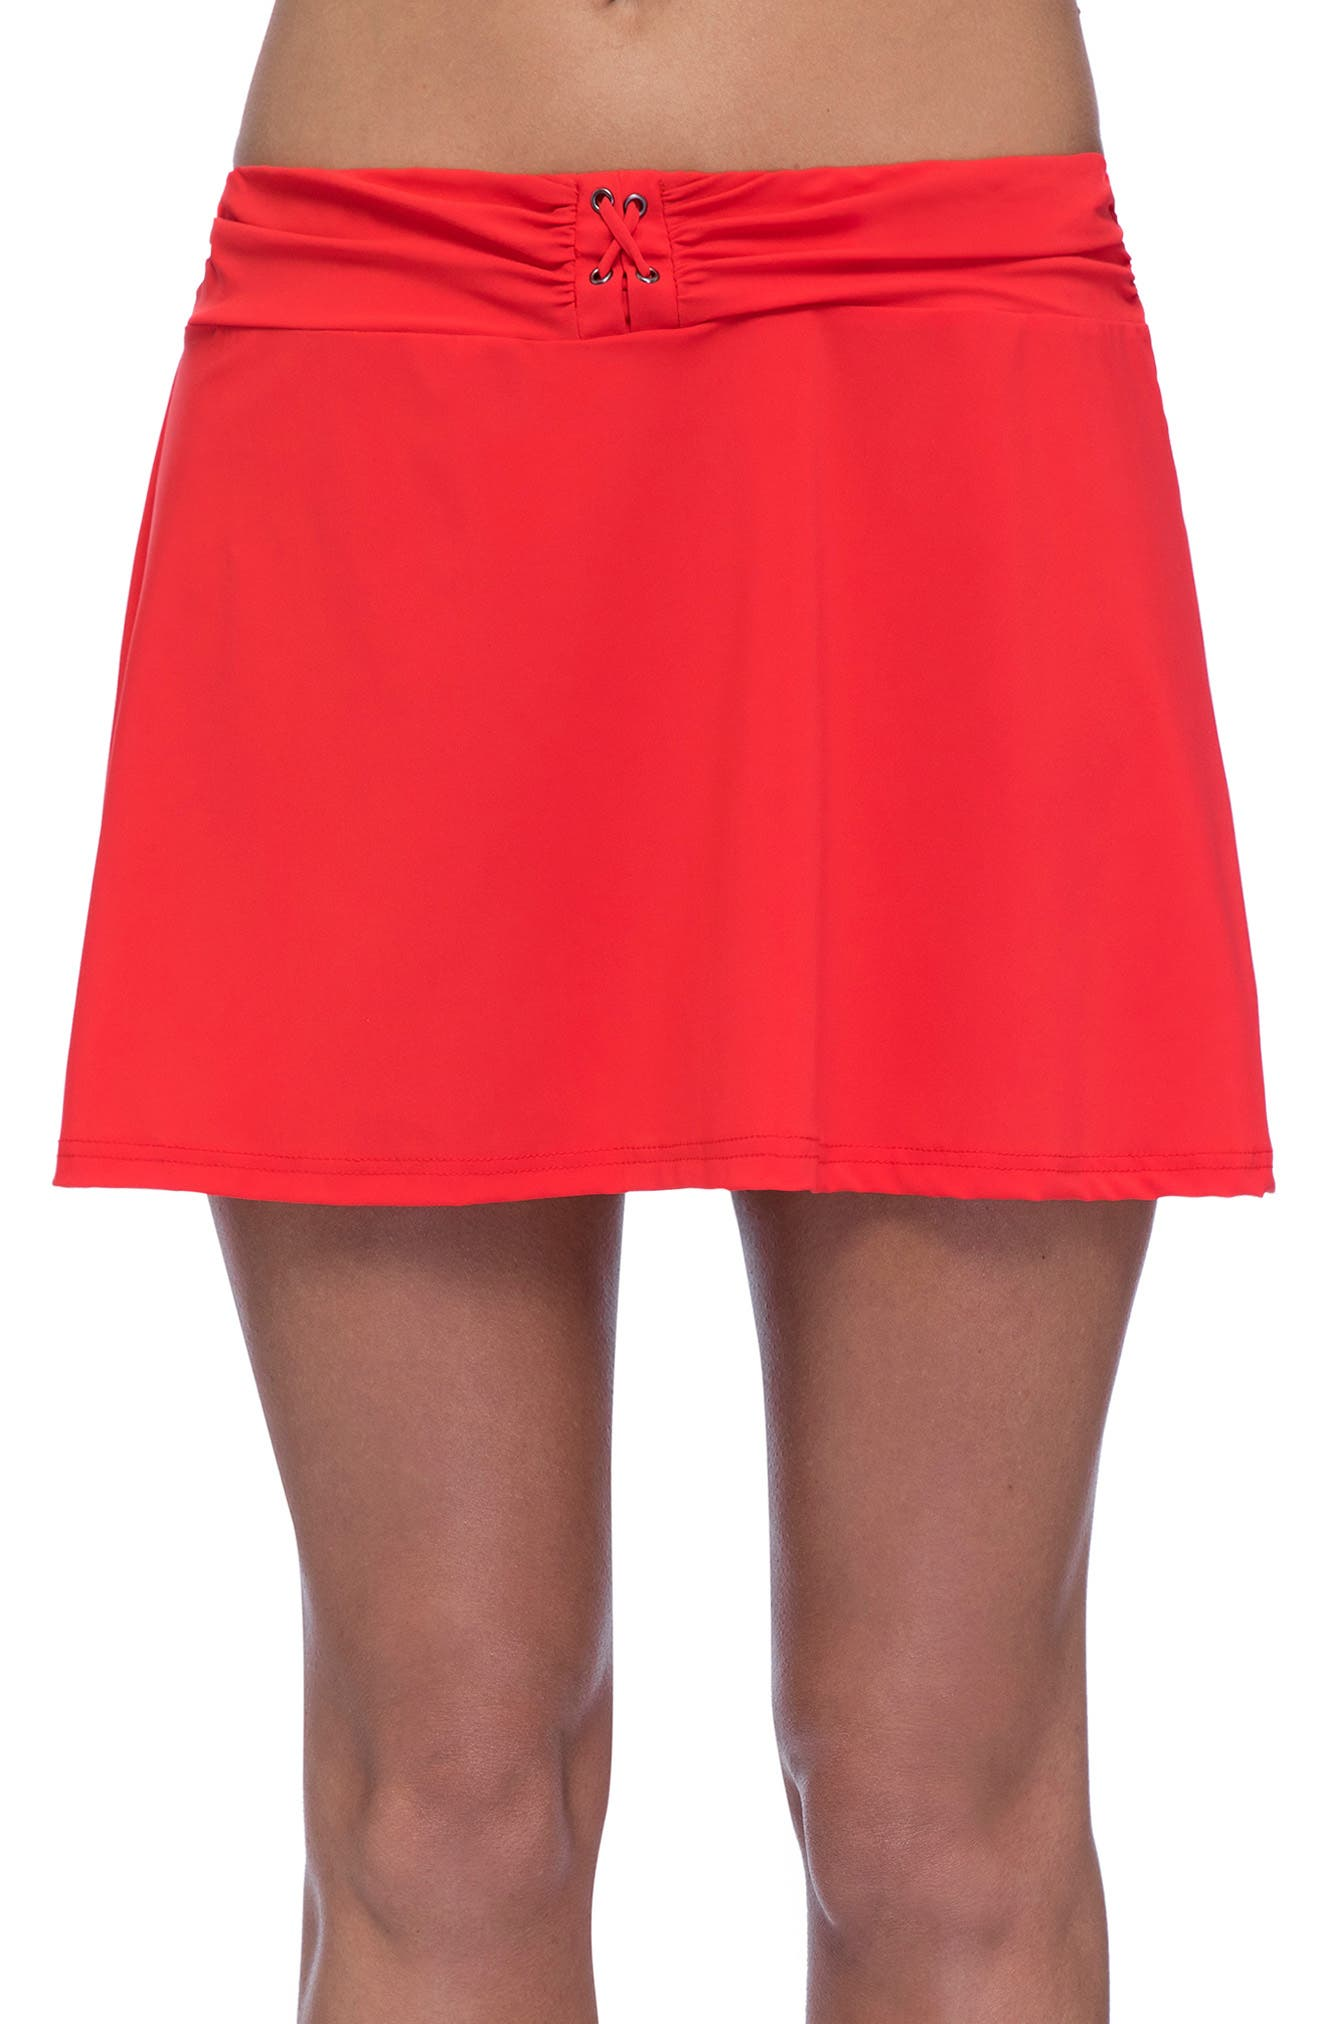 PROFILE BY GOTTEX Cover-Up Skirt, Main, color, TANGERINE